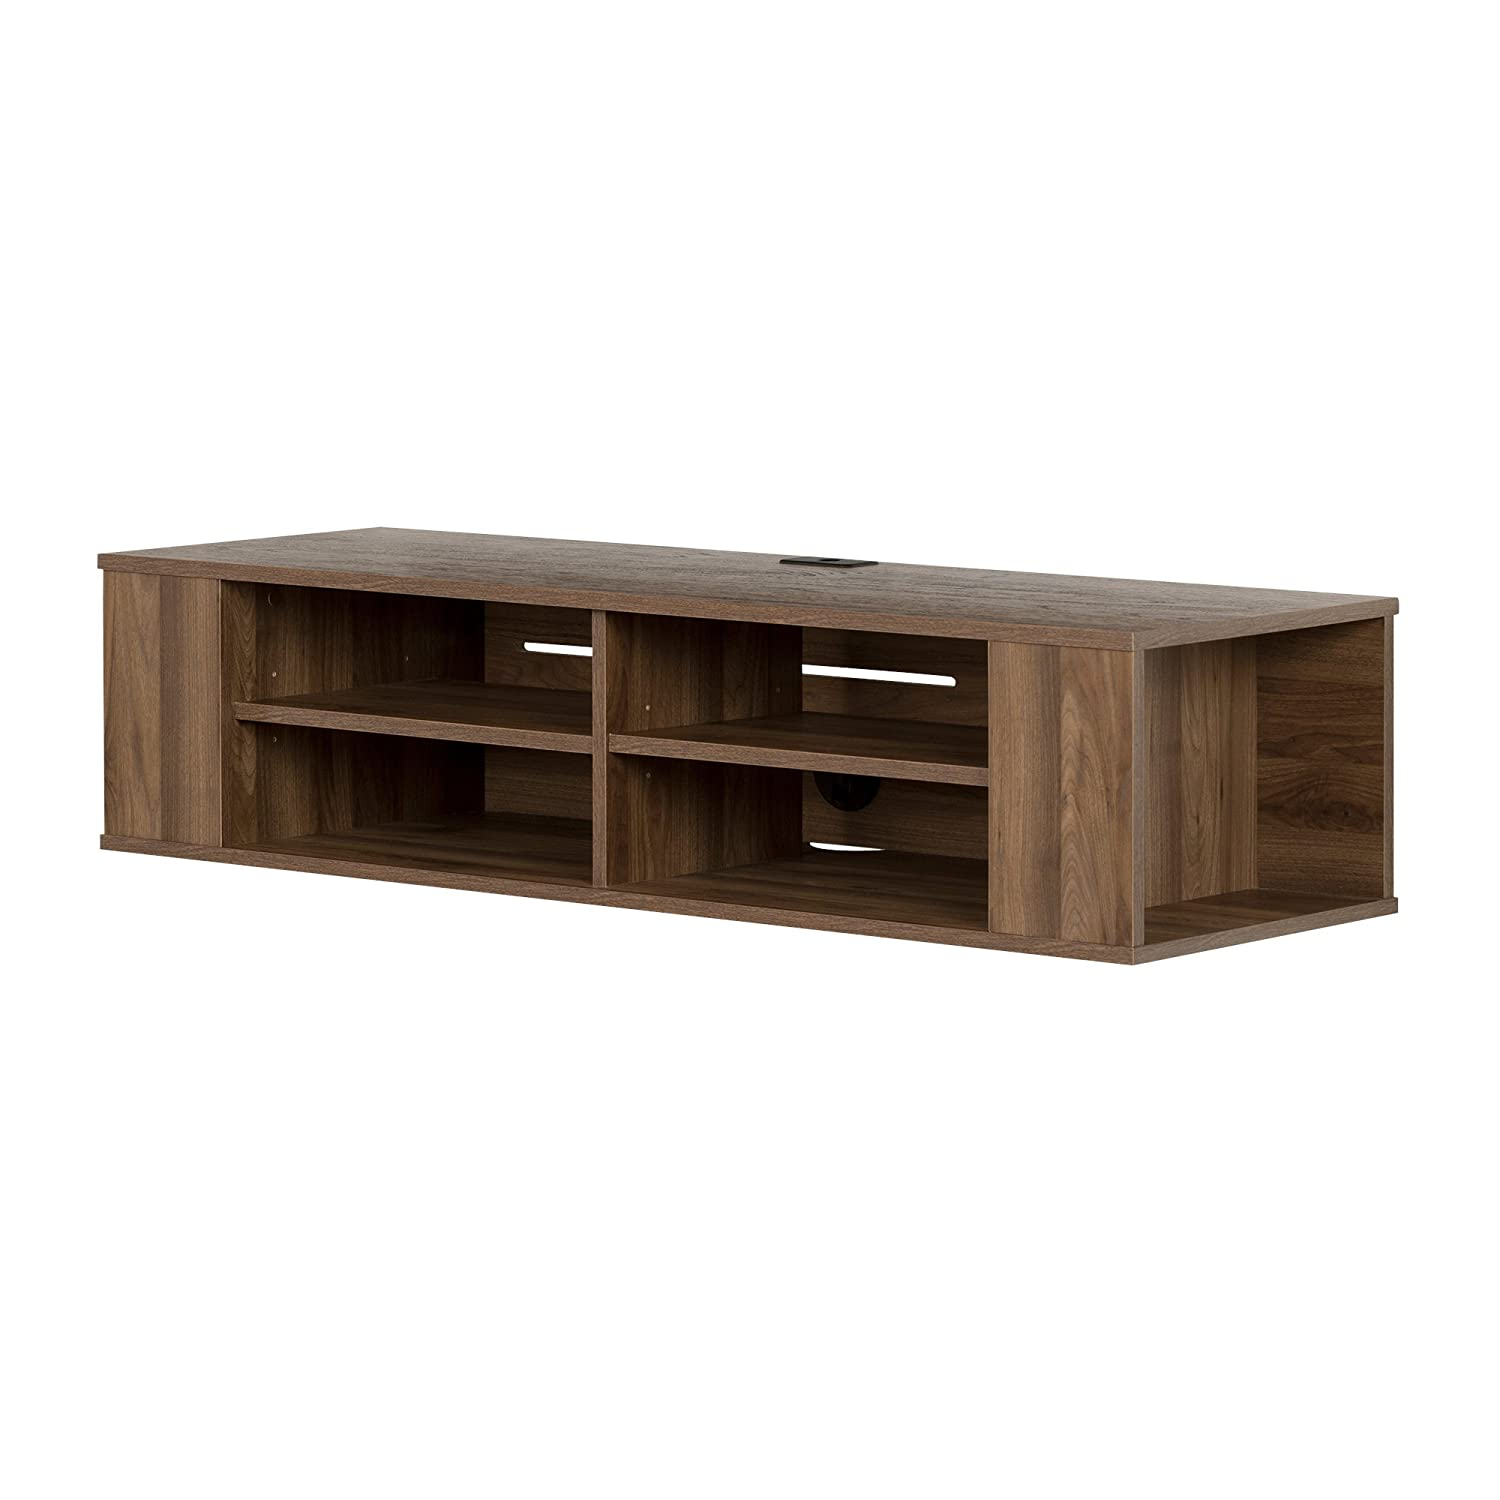 South Shore Furniture City Life Wall Mounted Media Console Shelf, Chocolate South Shore Industries Ltd 4419675